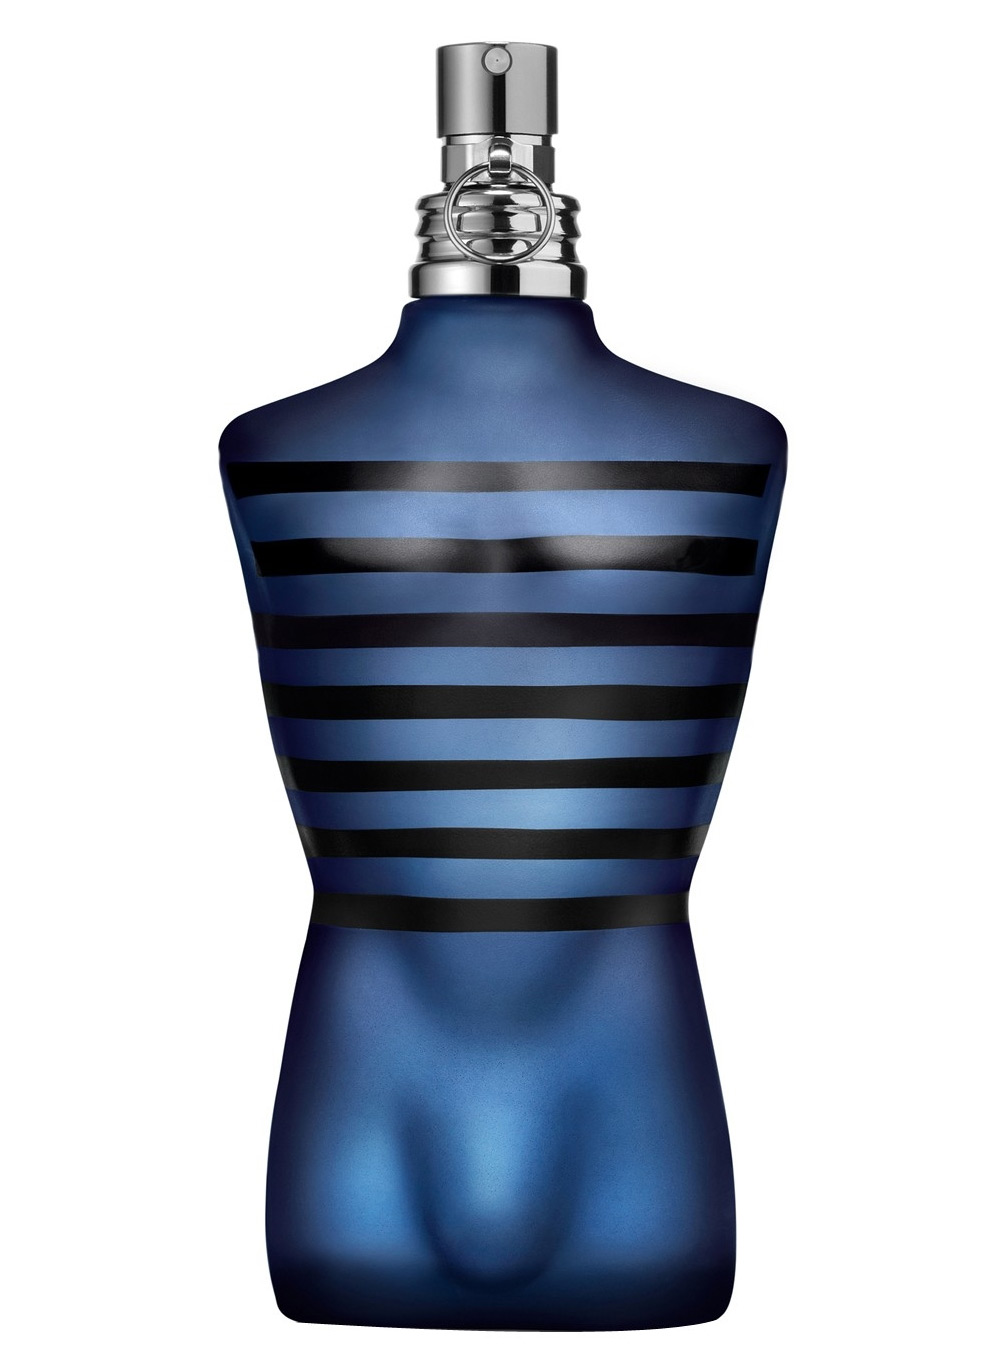 ultra male jean paul gaultier cologne a new fragrance for men 2015. Black Bedroom Furniture Sets. Home Design Ideas